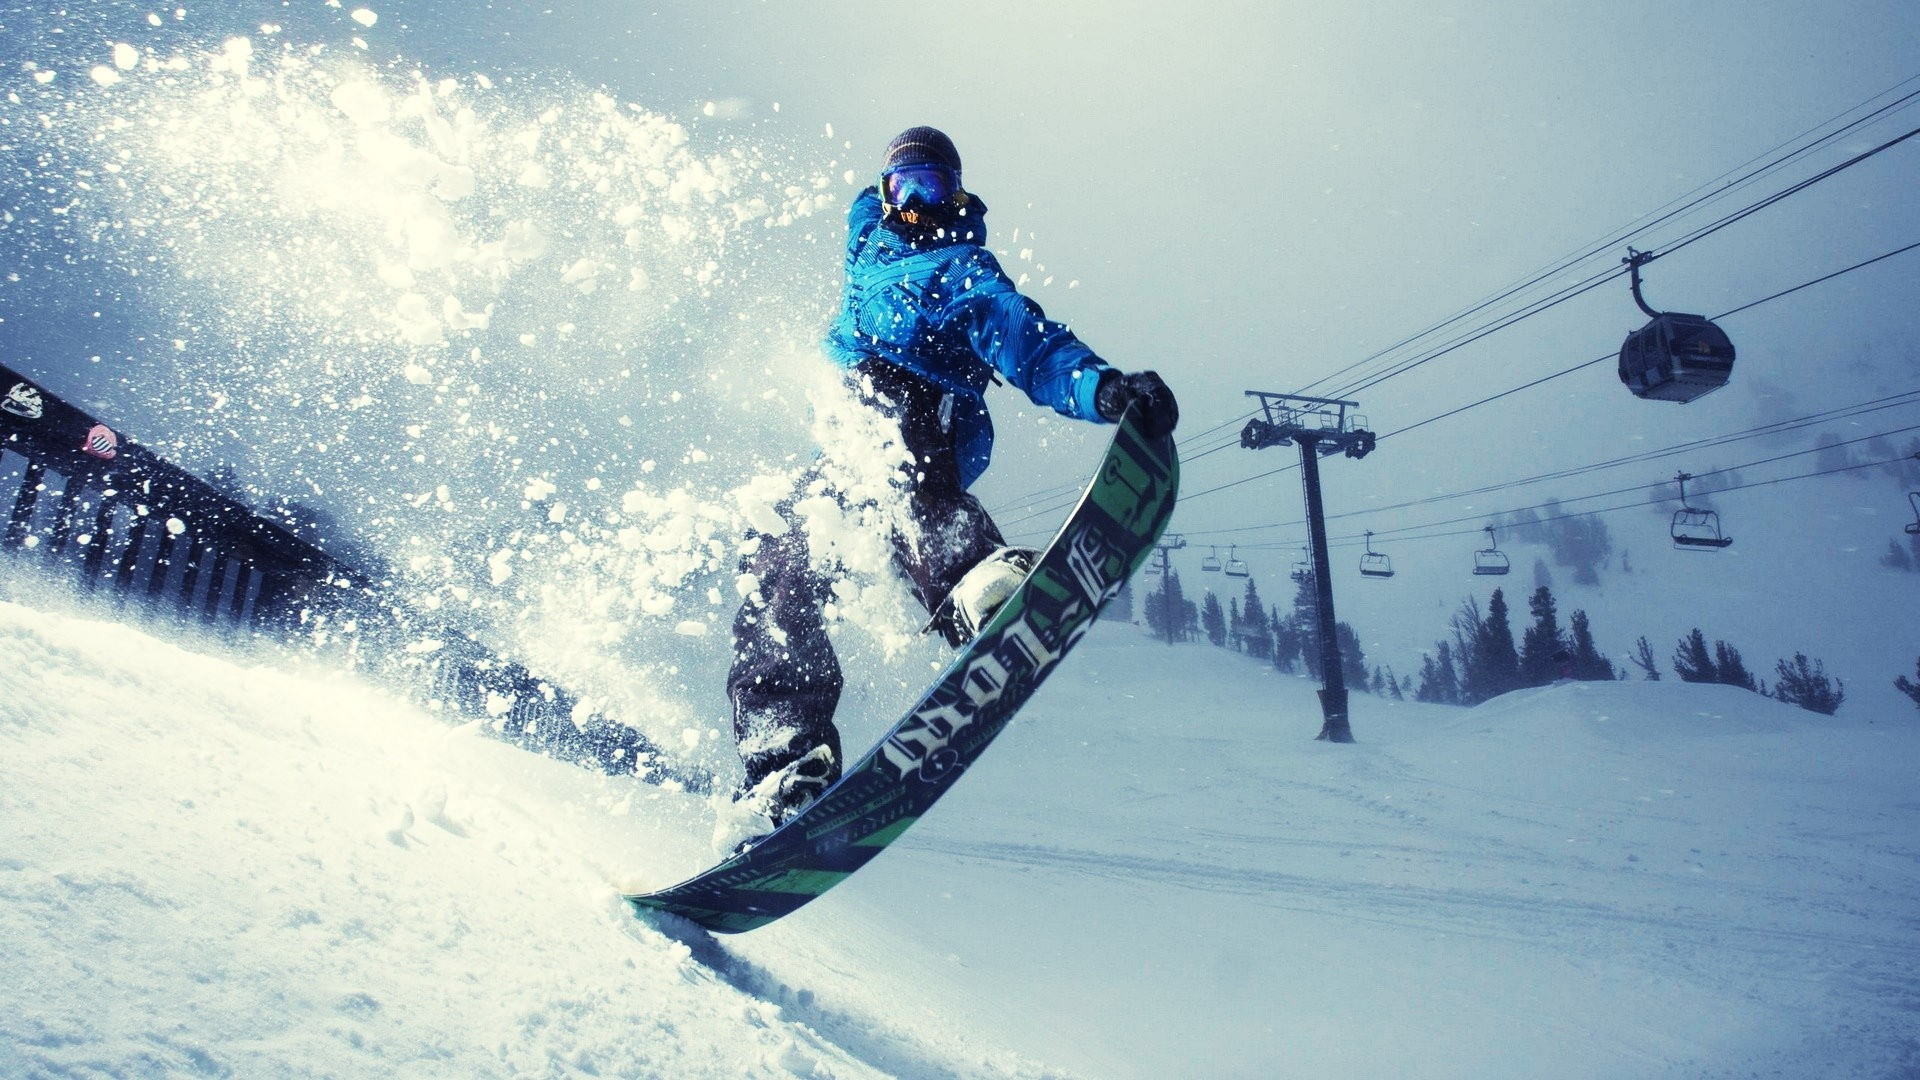 Download Wallpaper Horse Snow - tumblr_static_winter-season-snow-sports-athletic-snowboard-fresh-new  You Should Have_628821.jpg